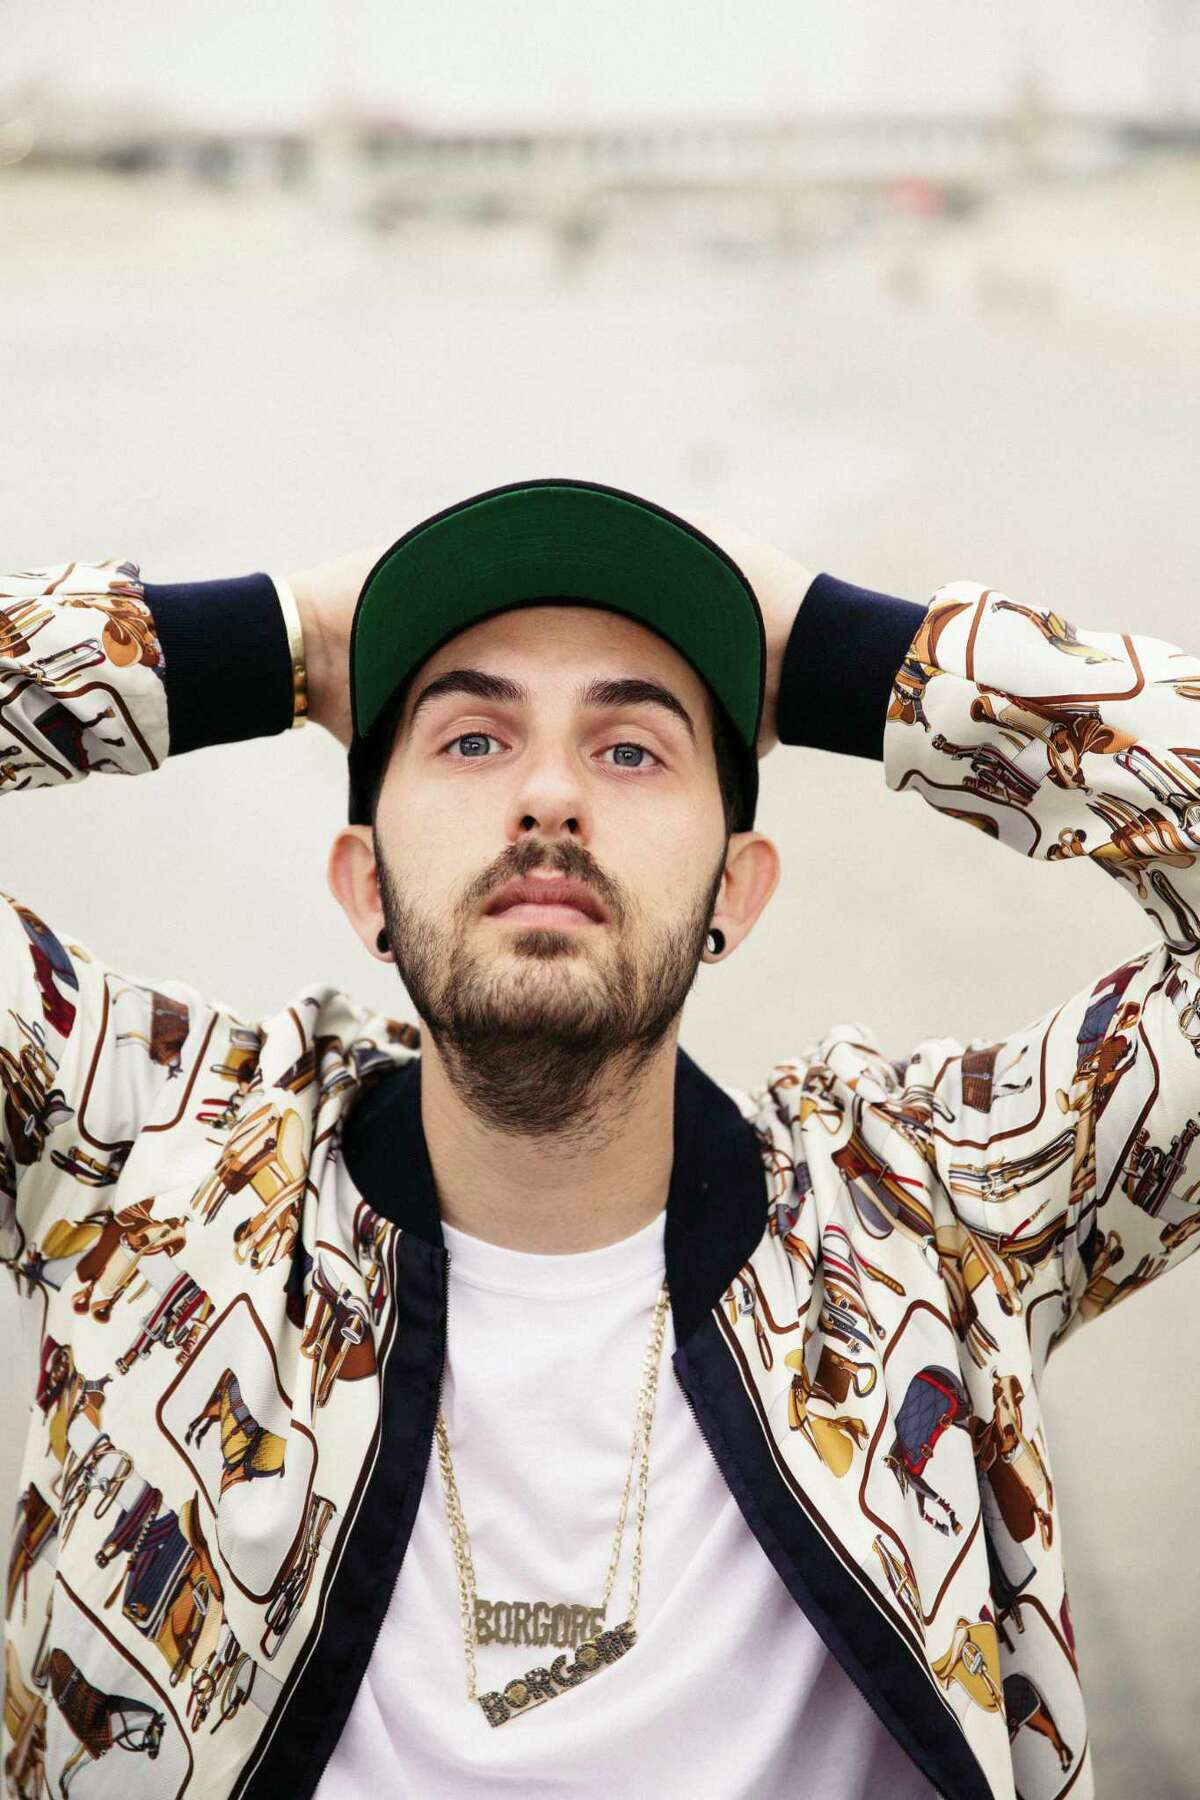 DJ Borgore will play the Mala Luna Music Festival on the weekend before Halloween